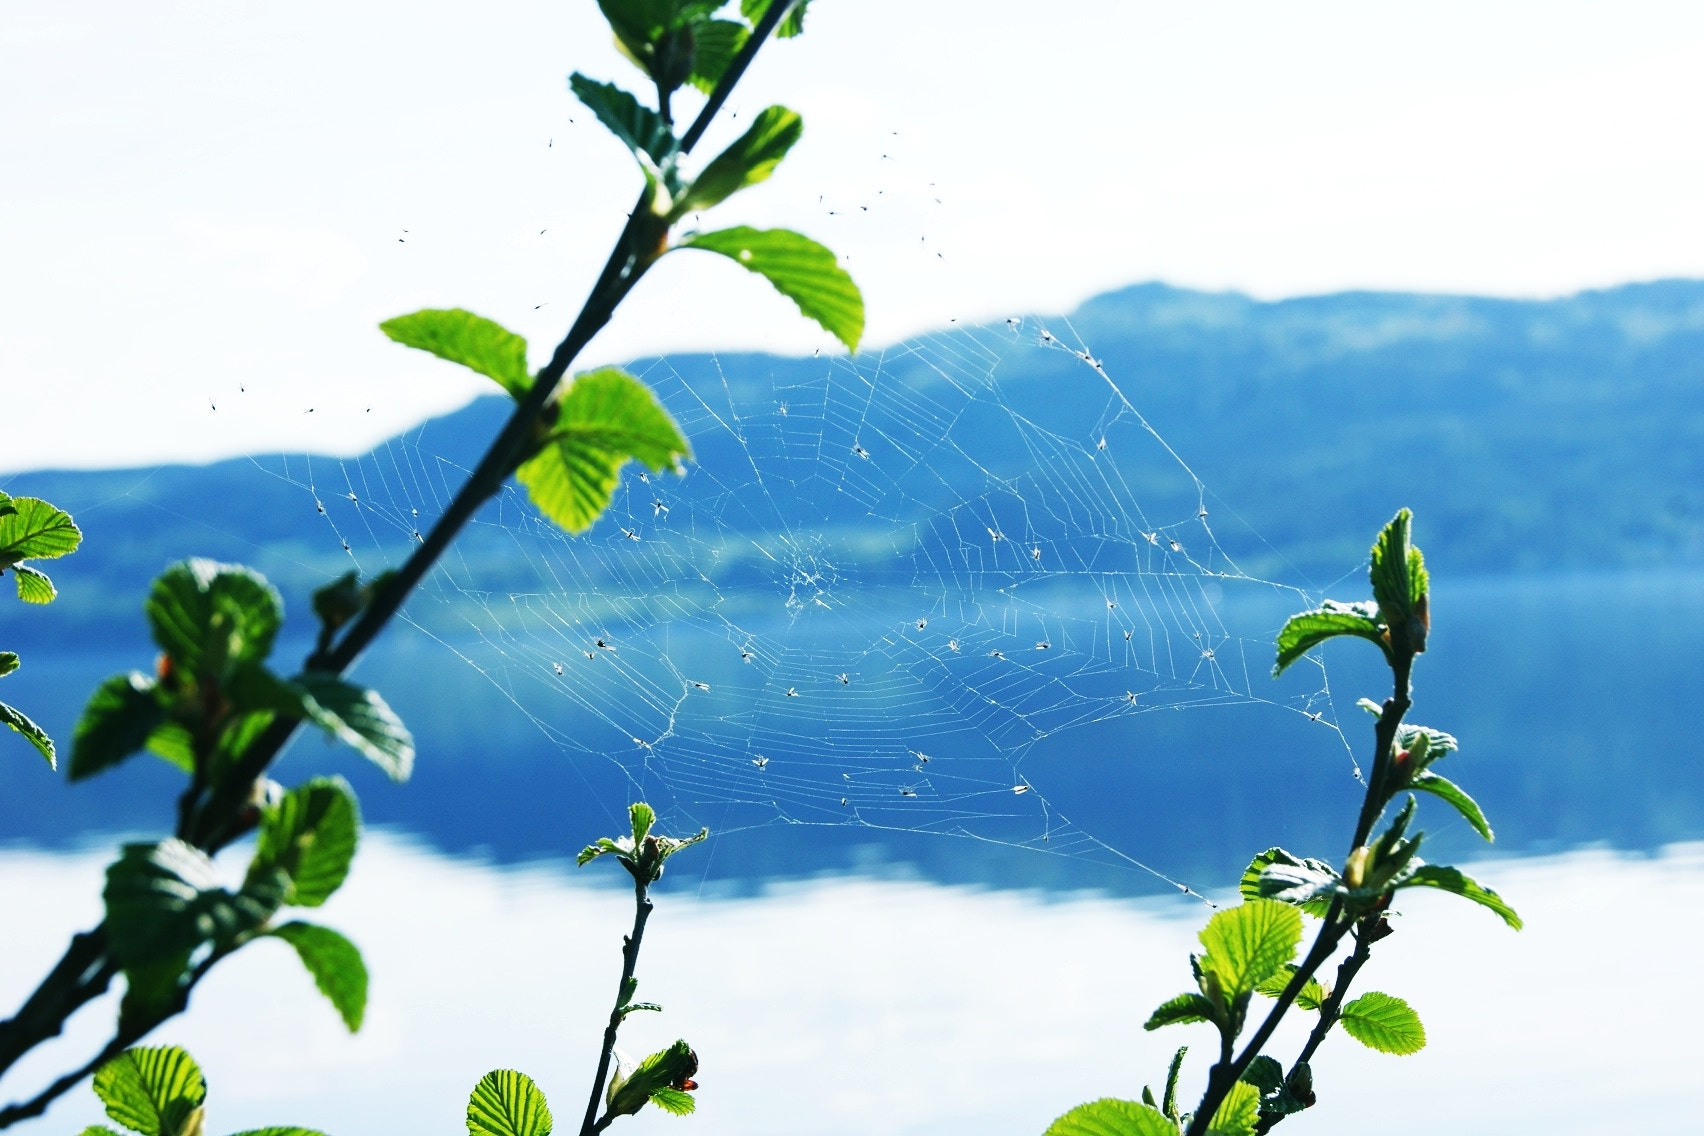 Photograph Spider's web by Zaneta Warszewik on 500px